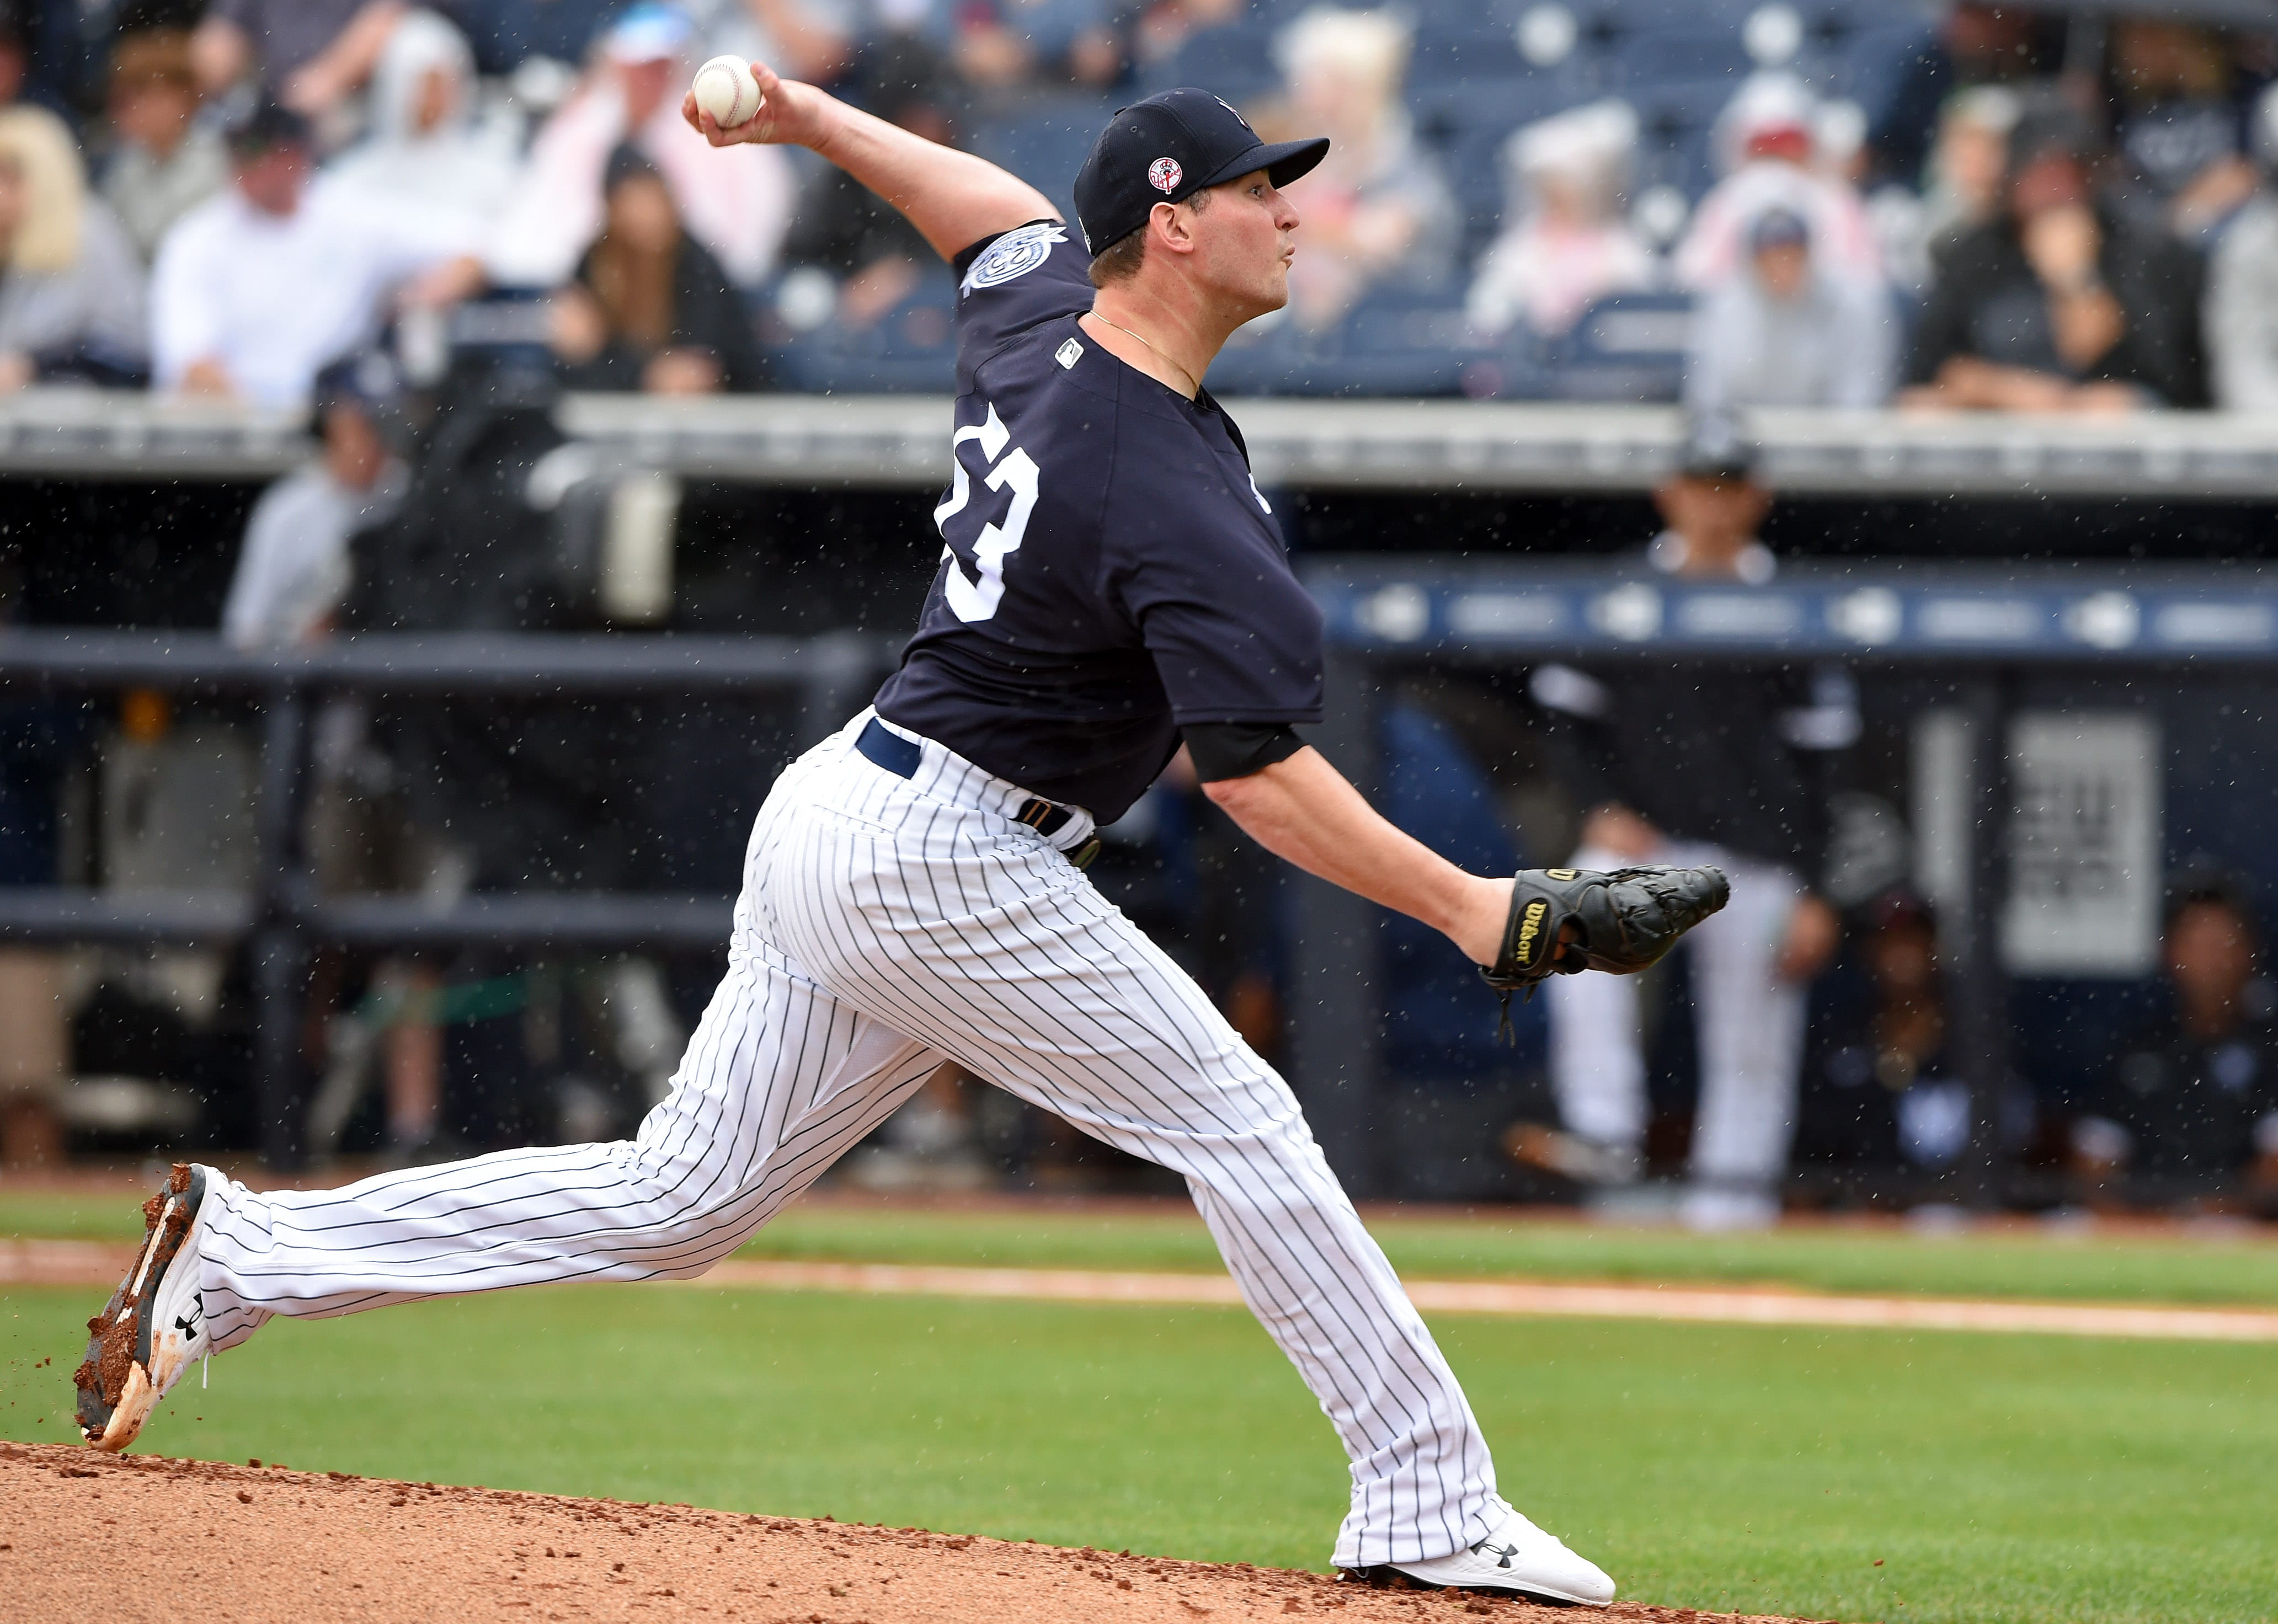 New York Yankees, Zack Britton